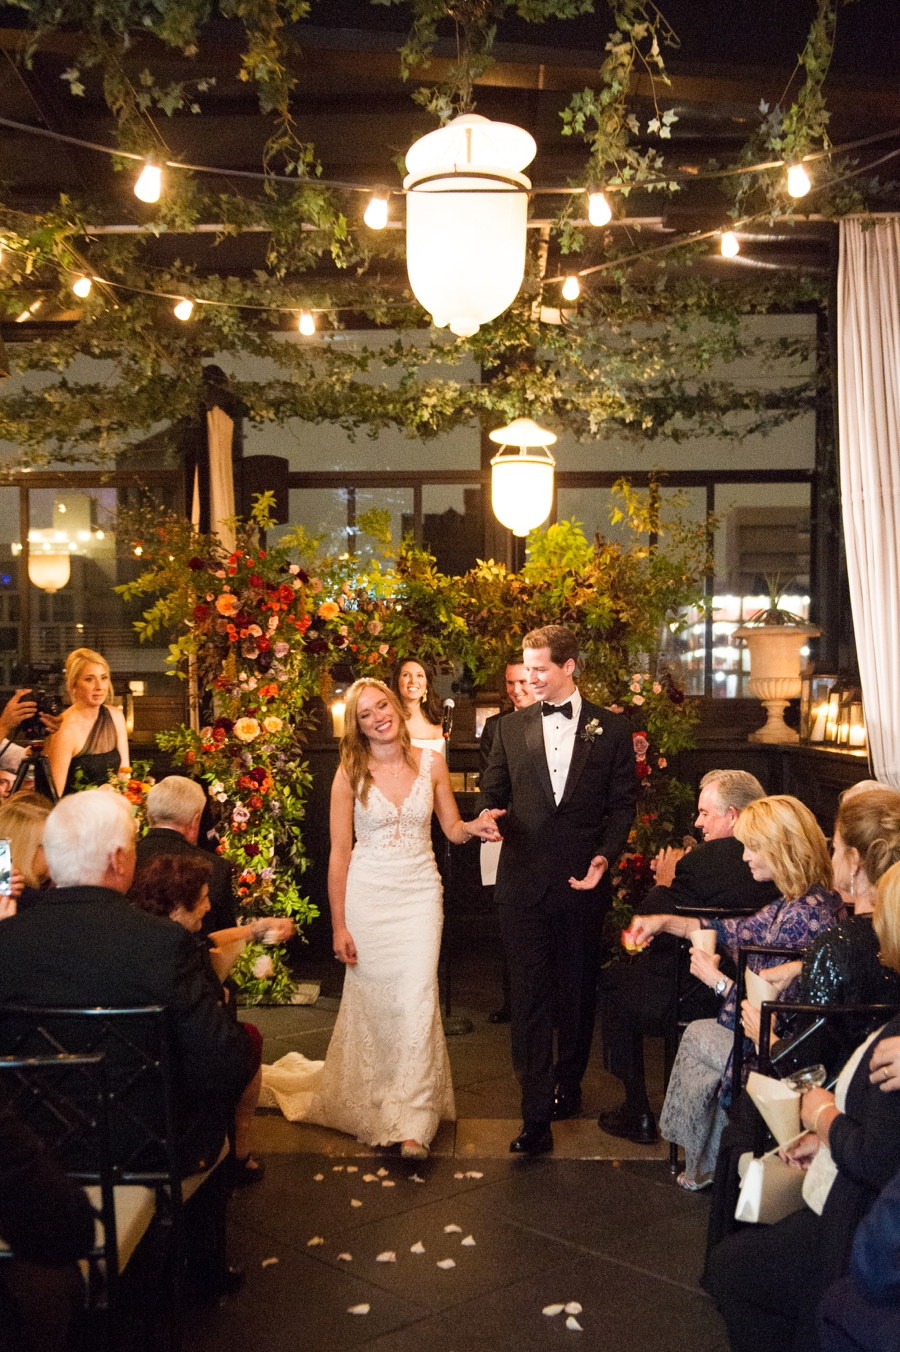 Gramercy_Park_Hotel_NYC_Wedding_MJ_031.jpg